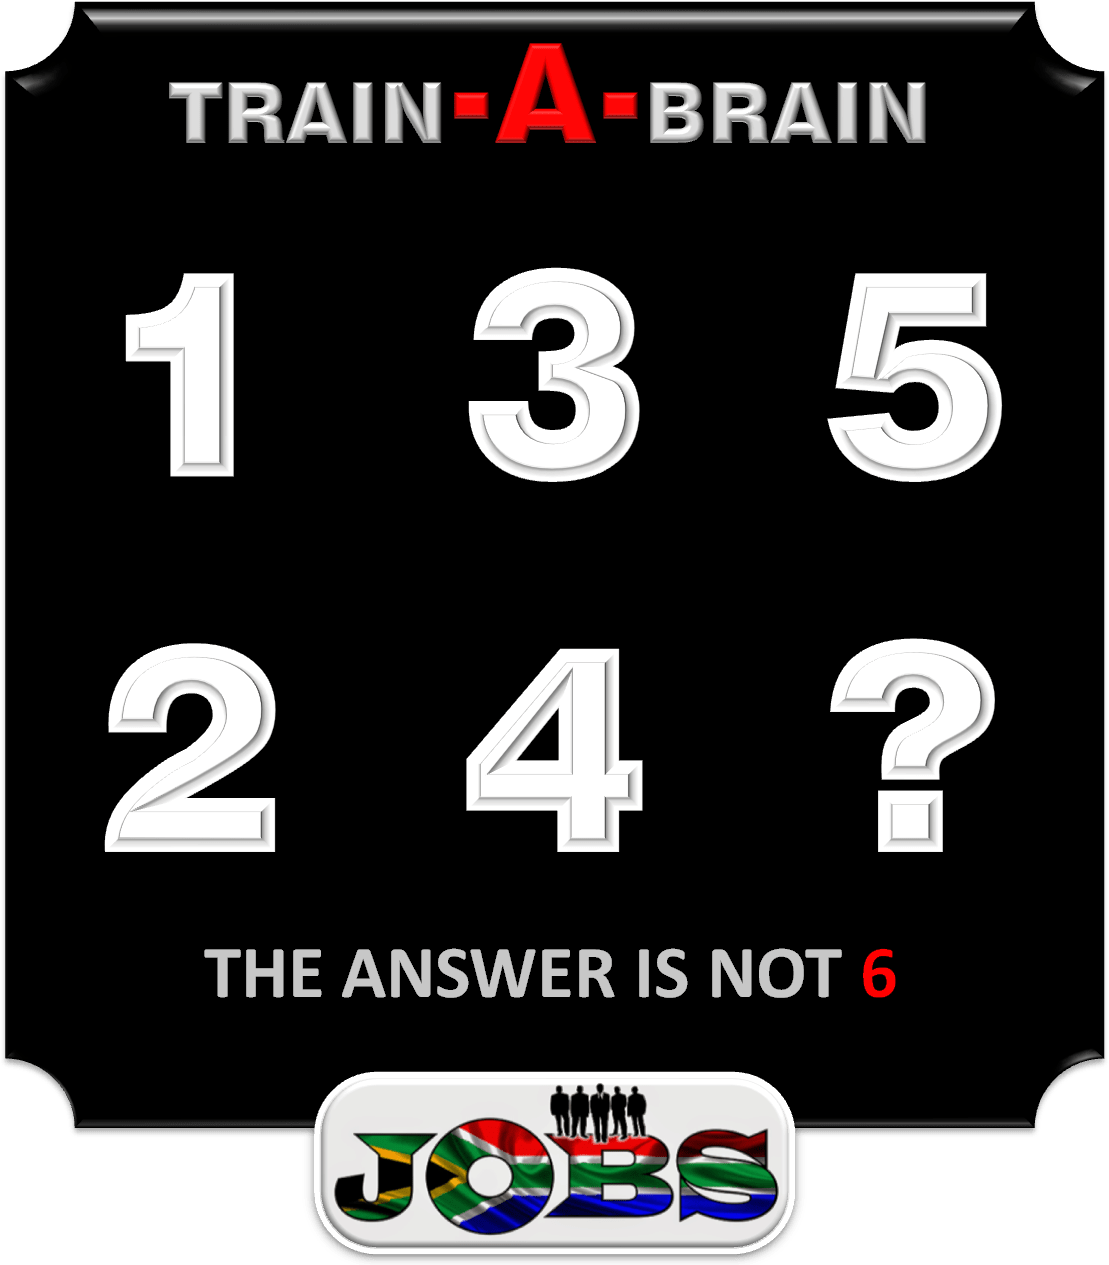 THE ANSWER IS NOT 6